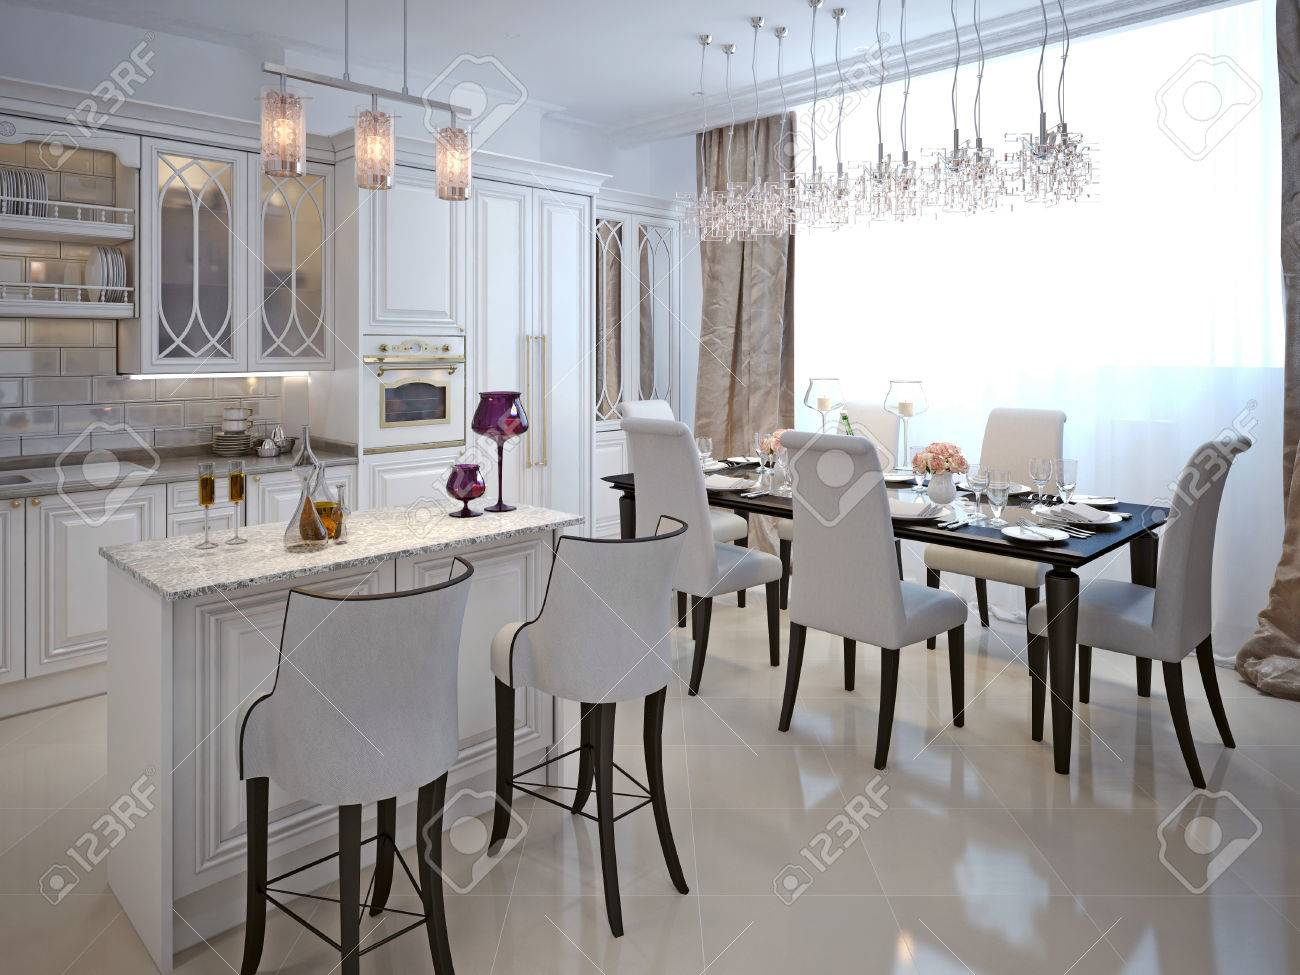 The Kitchen Dining Room In A Classical Style White Color And Chernomom